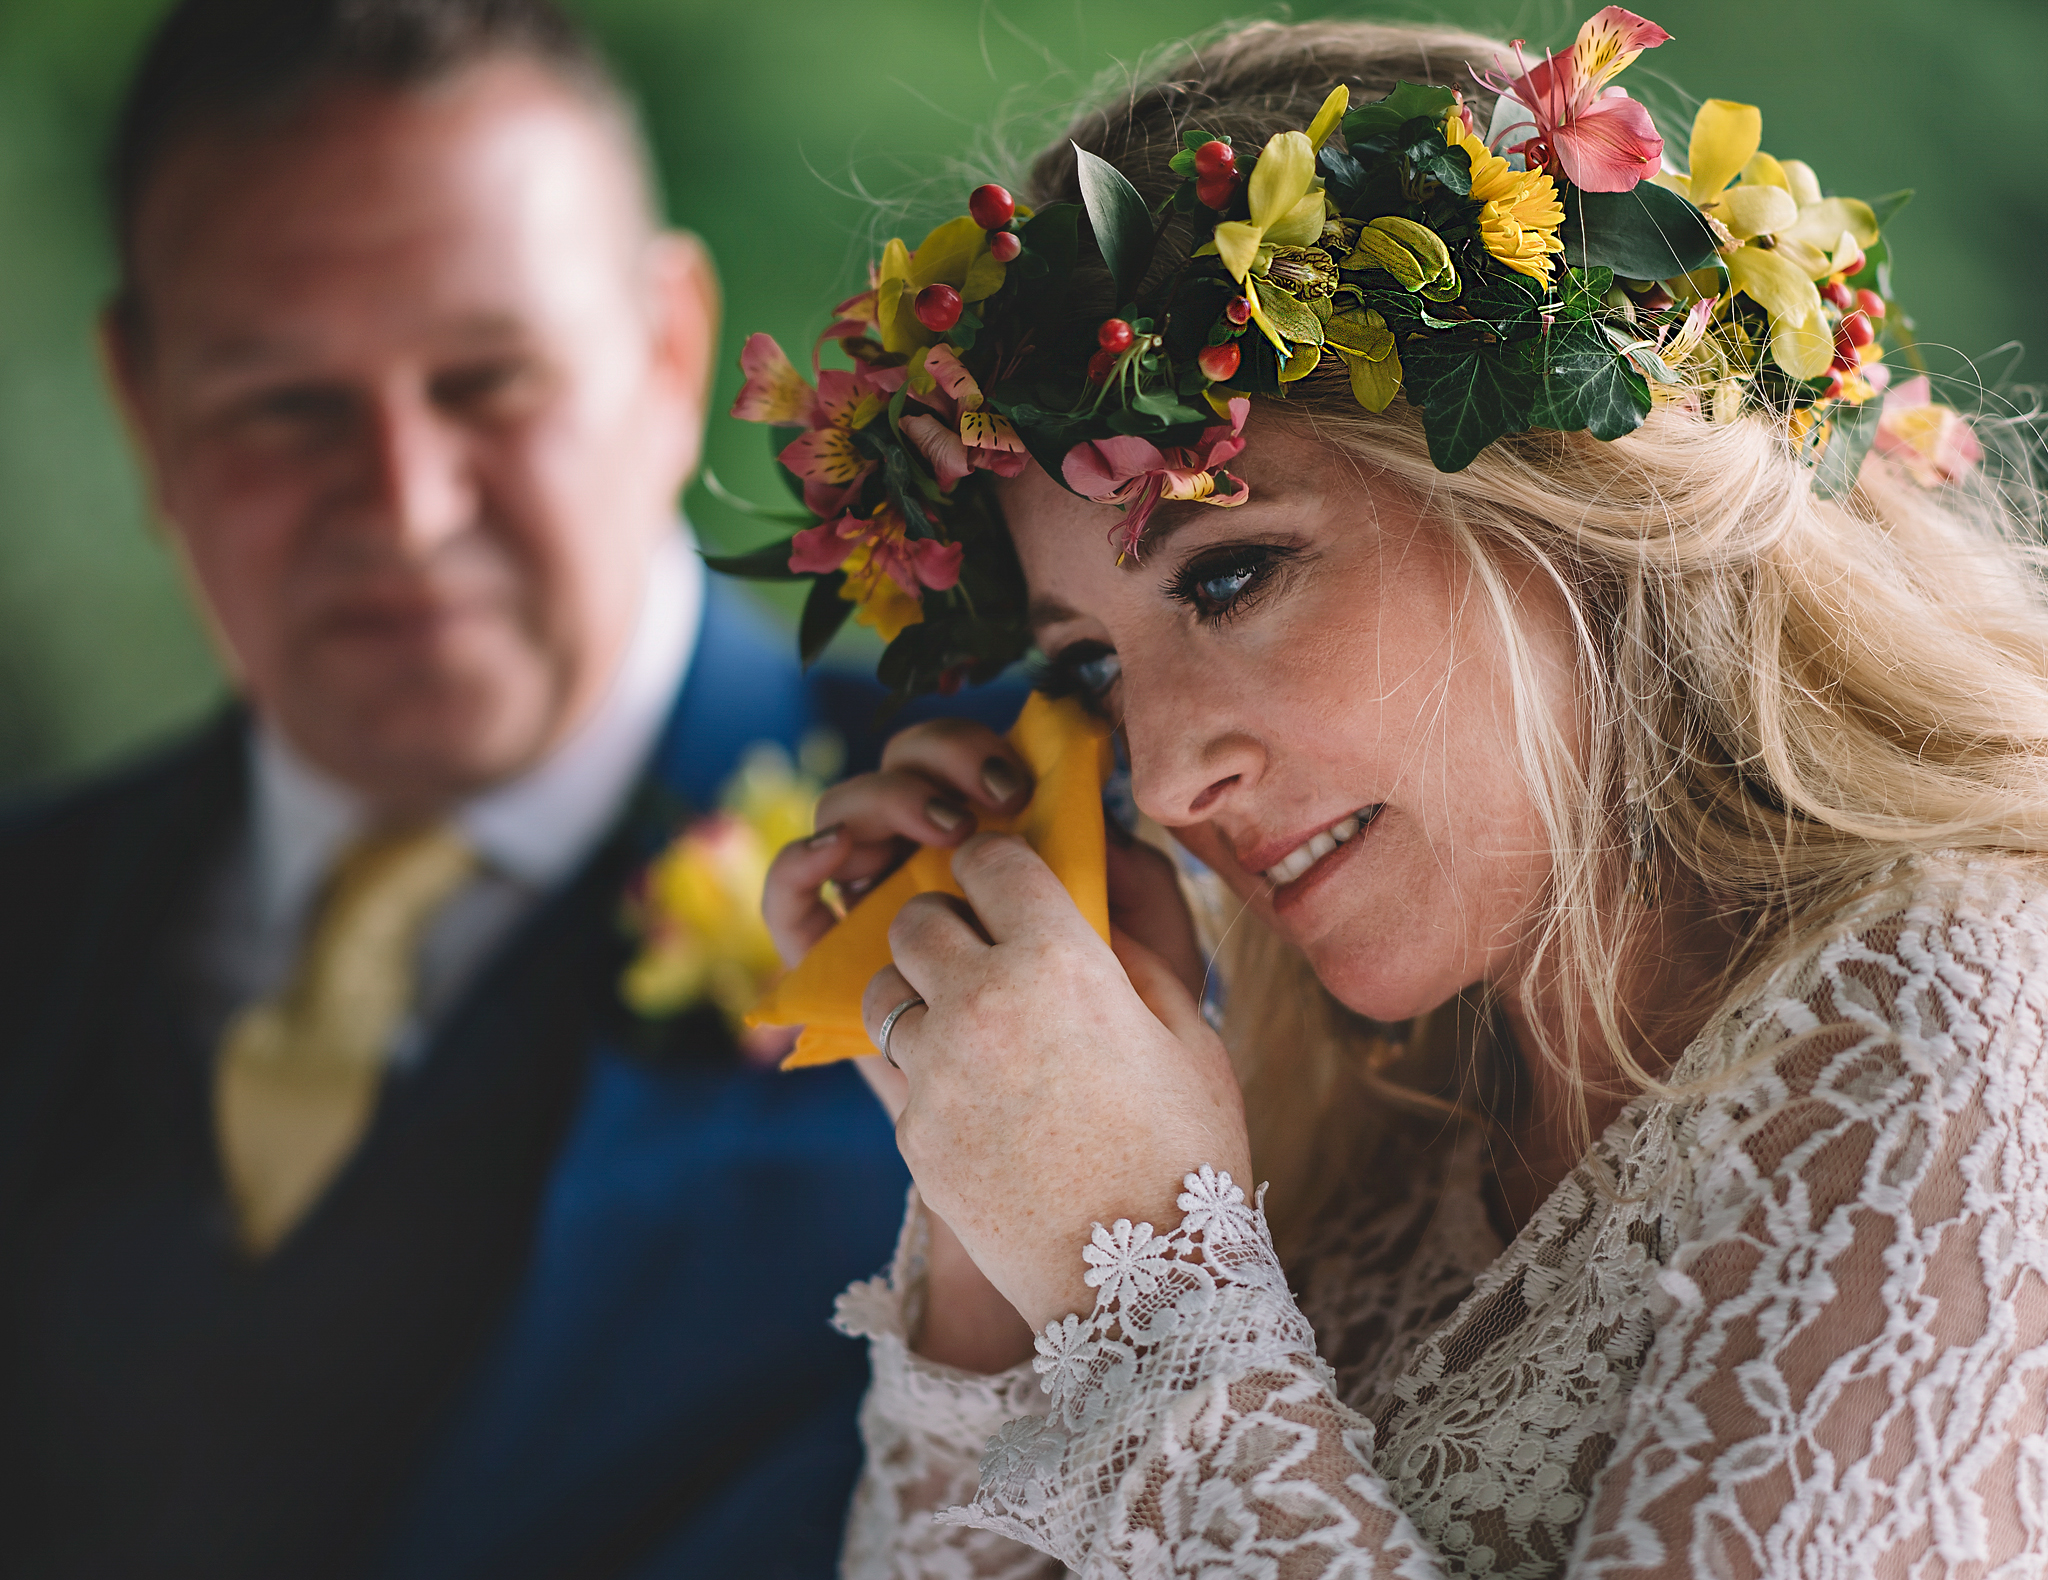 Bride in tropical floral crown wipes her eyes while father looks on- photo by Edwin Tan Photography